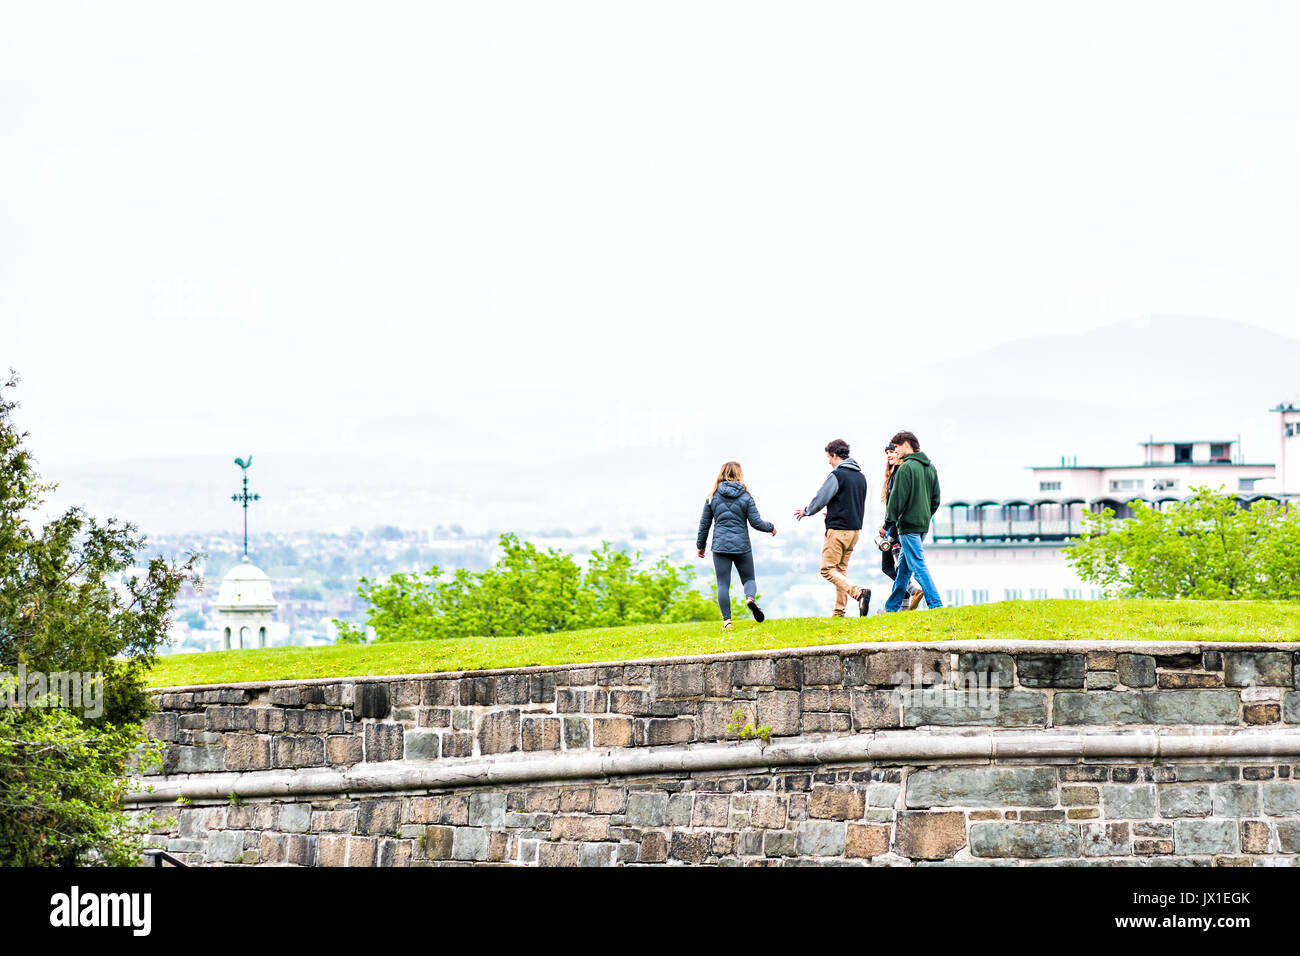 Quebec City, Canada - May 29, 2017: Group of young people walking on top of green grass fields in park with fortifications stone wall - Stock Image